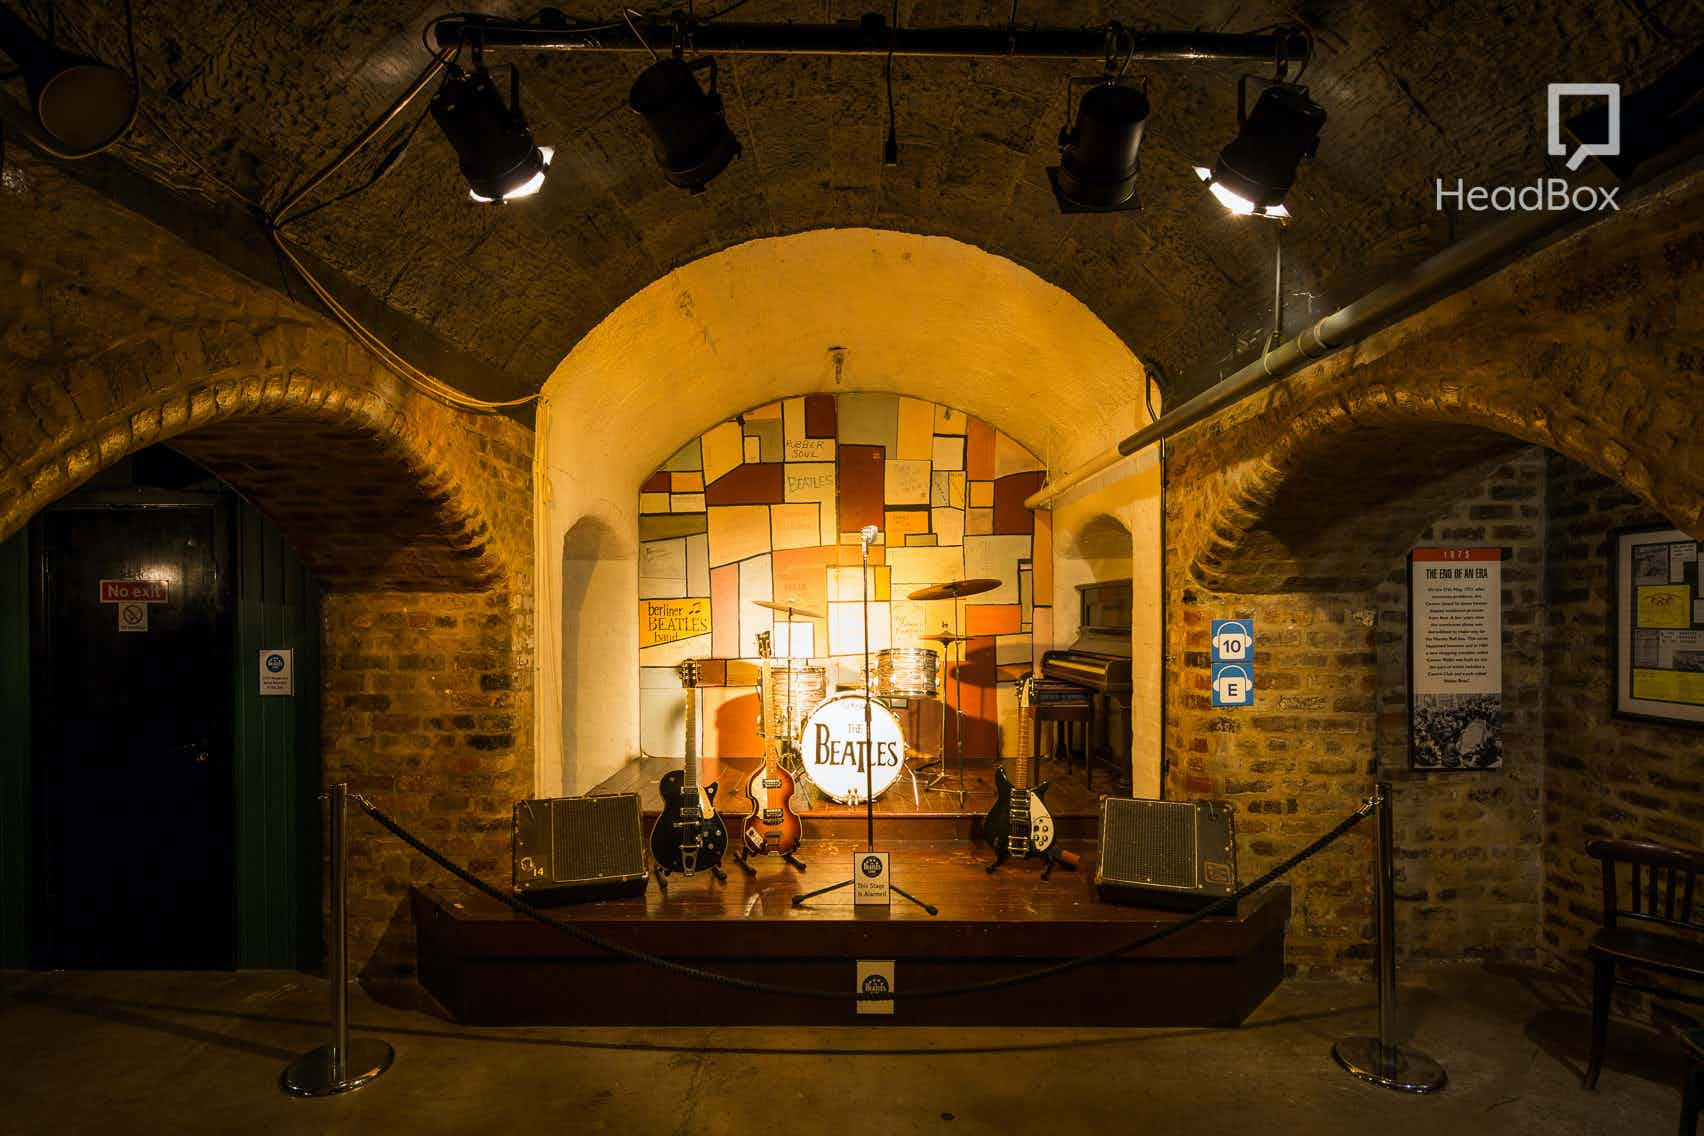 Cavern Club or Matthew Street or White Room, The Beatles Story